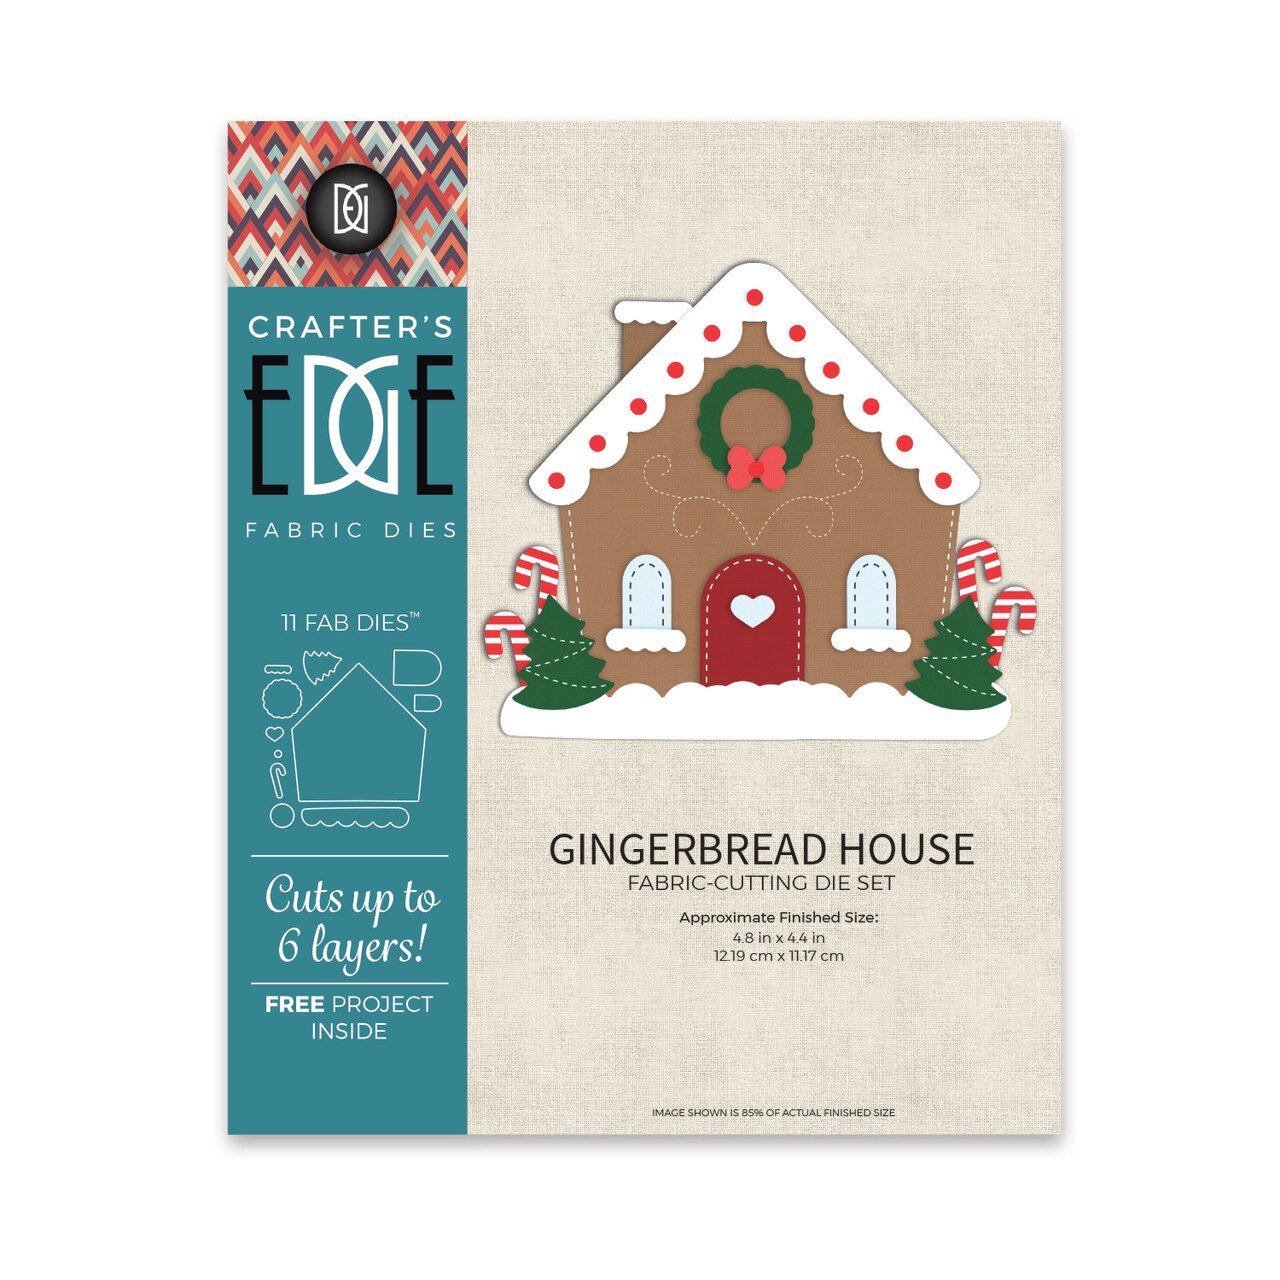 Gingerbread House - Fabric Cutting Die Set